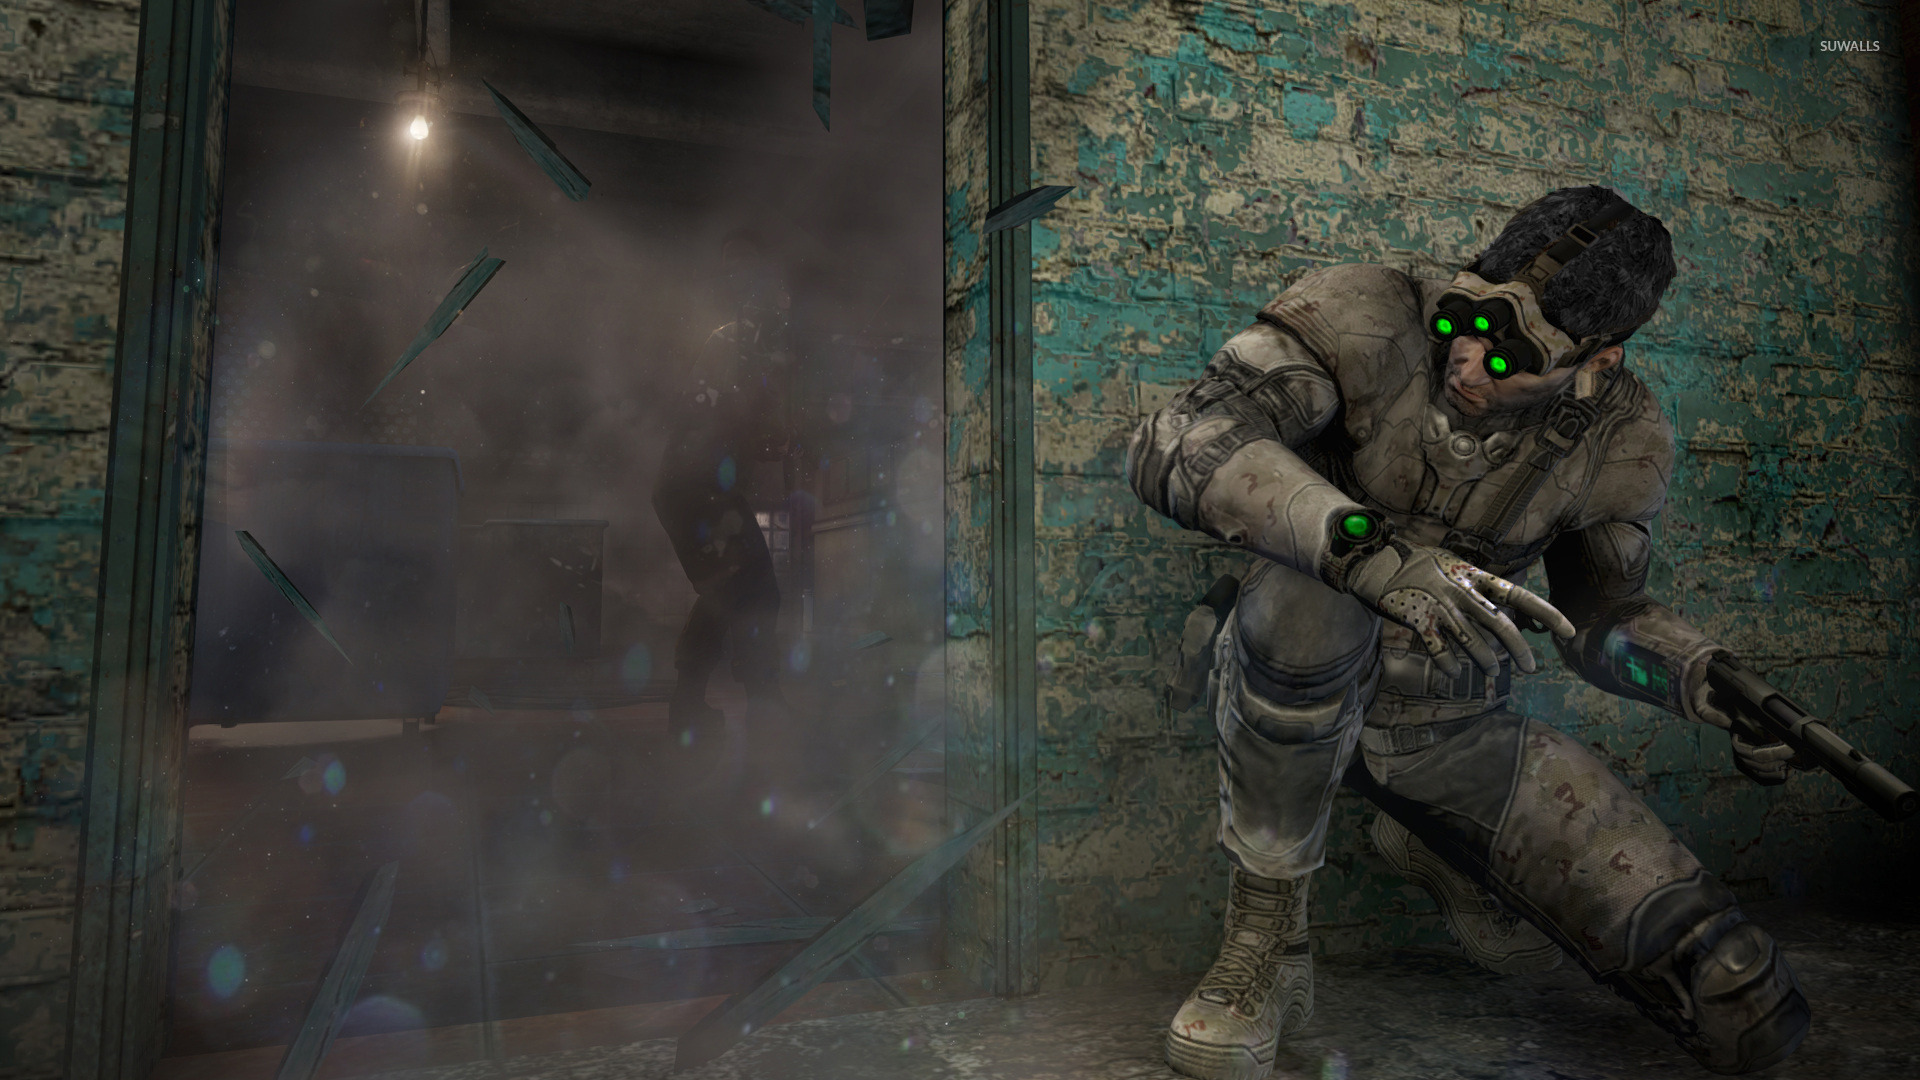 Tom Clancys Splinter Cell Blacklist wallpaper Game wallpapers